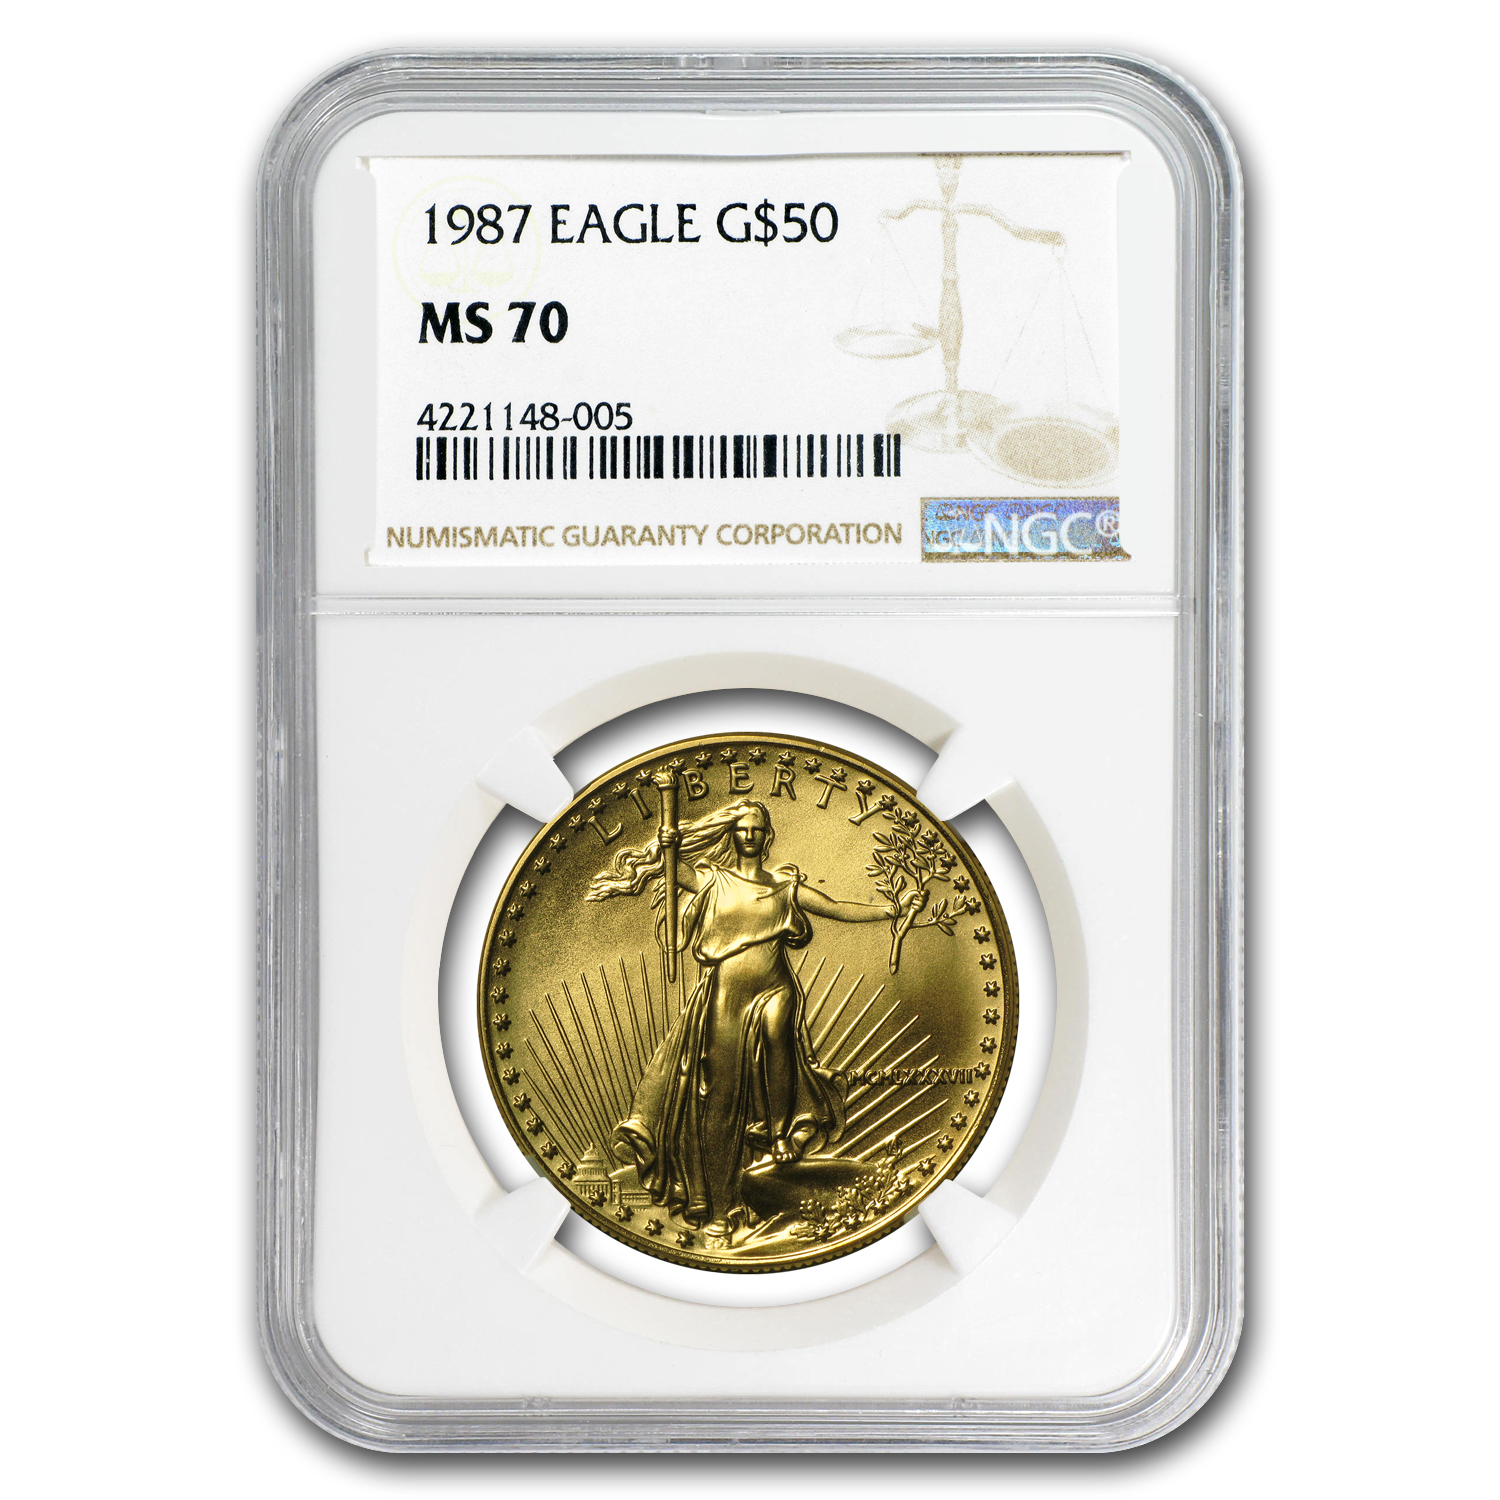 1987 1 oz Gold American Eagle MS-70 NGC (Registry Set)